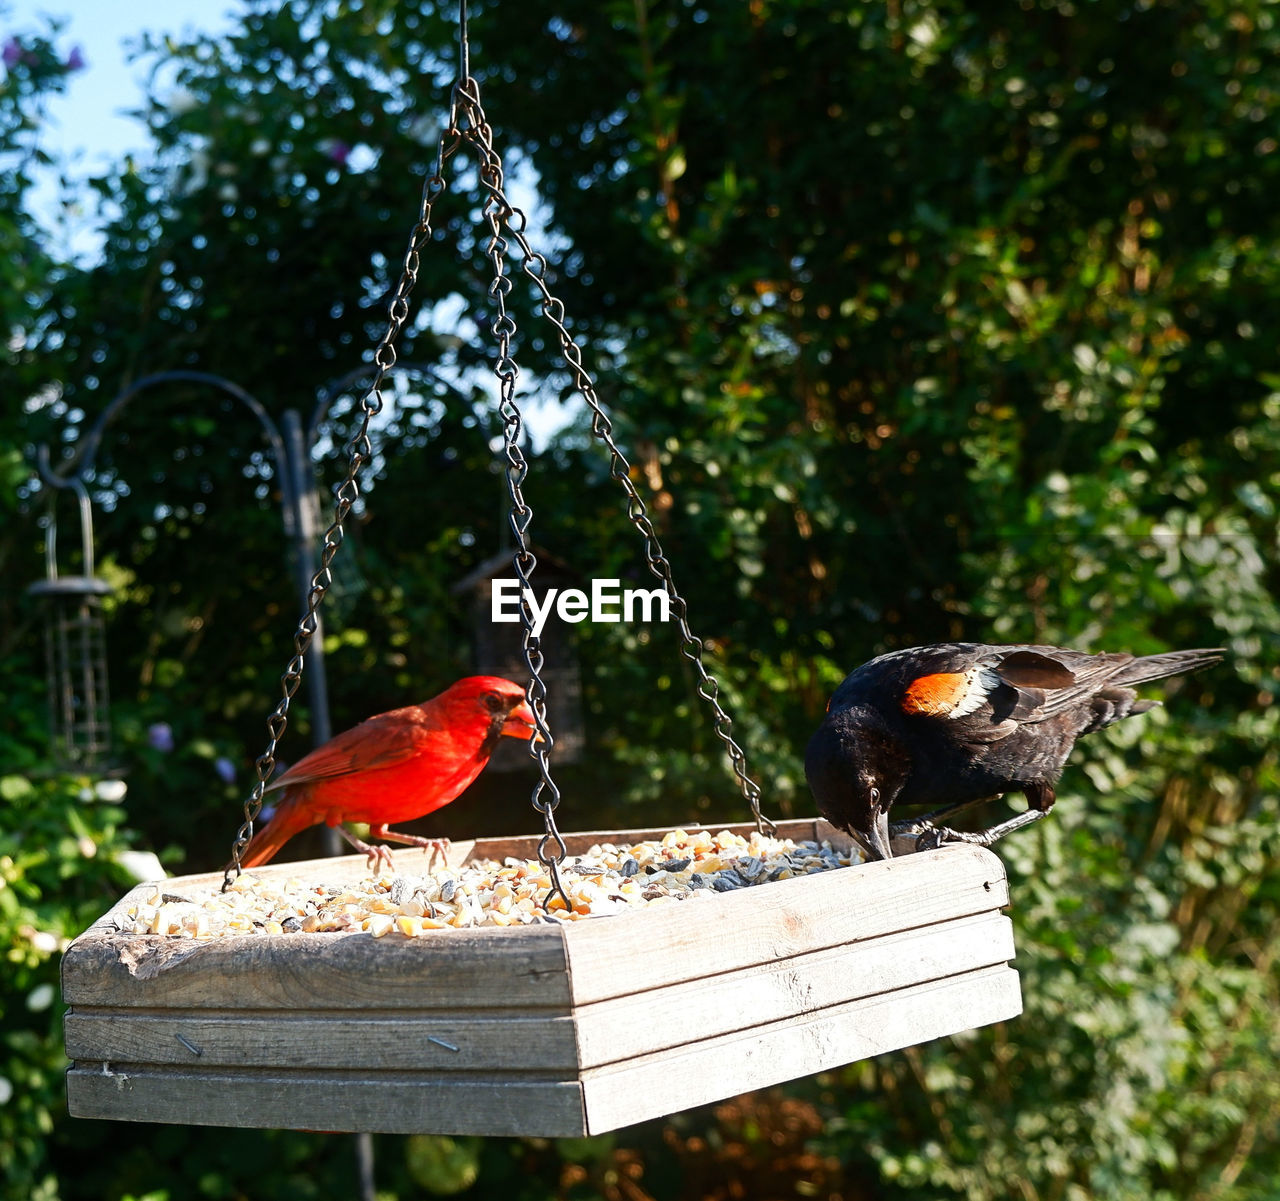 animal, animal wildlife, animals in the wild, bird, vertebrate, animal themes, perching, group of animals, nature, focus on foreground, tree, wood - material, day, two animals, no people, bird feeder, sunlight, outdoors, plant, red